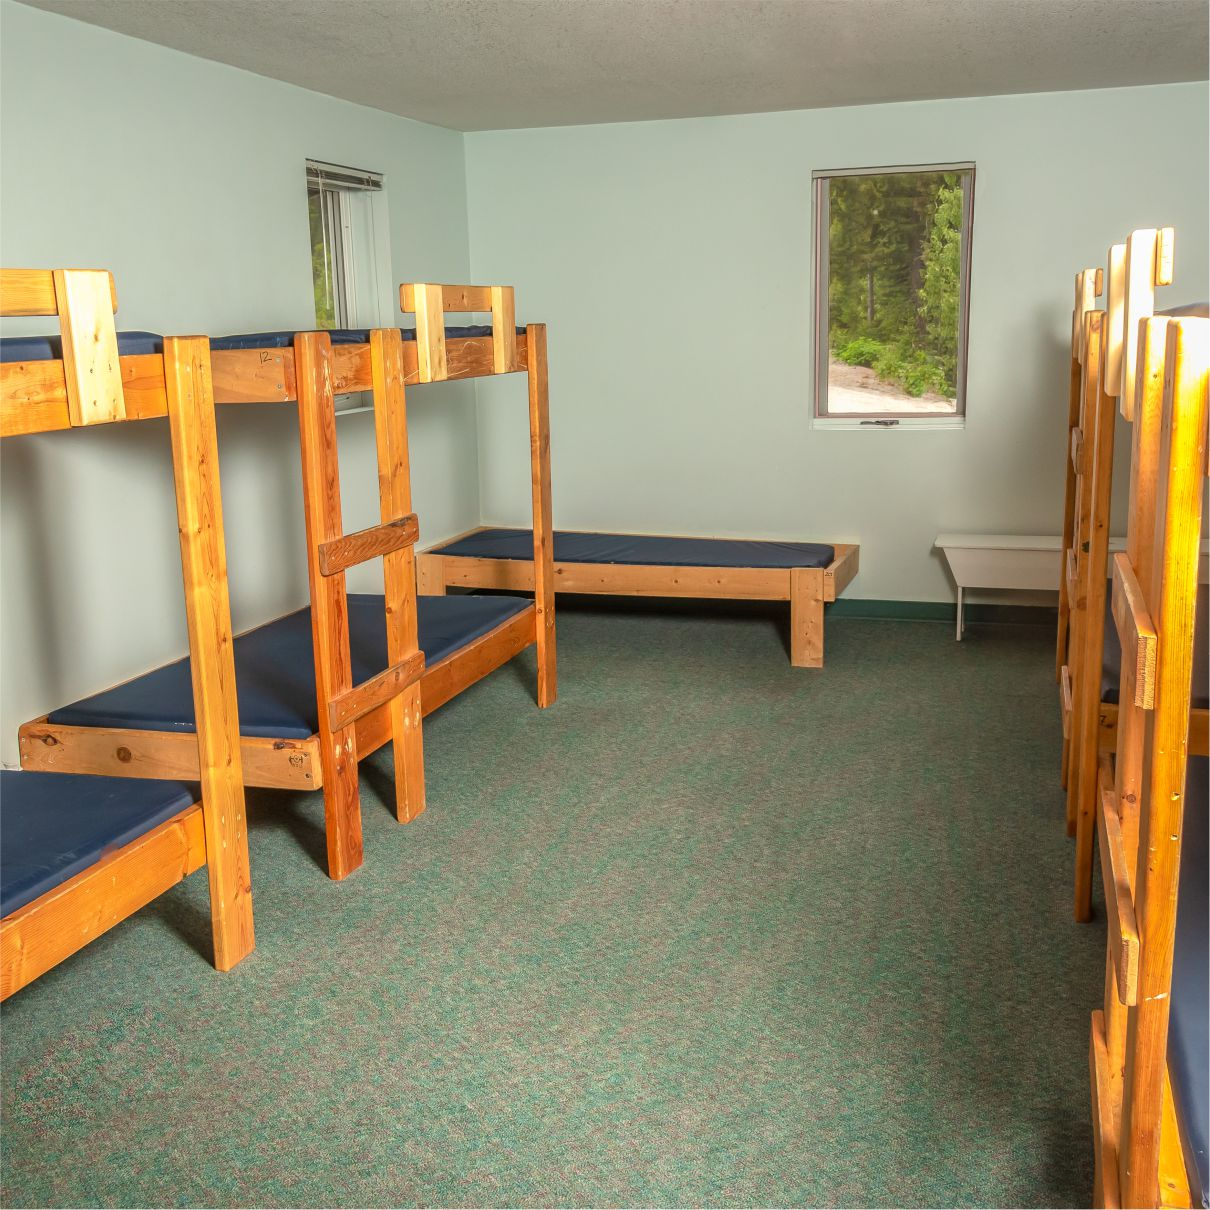 Island Lake Christian Retreat Centre has several dormitories for sleeping accommodations